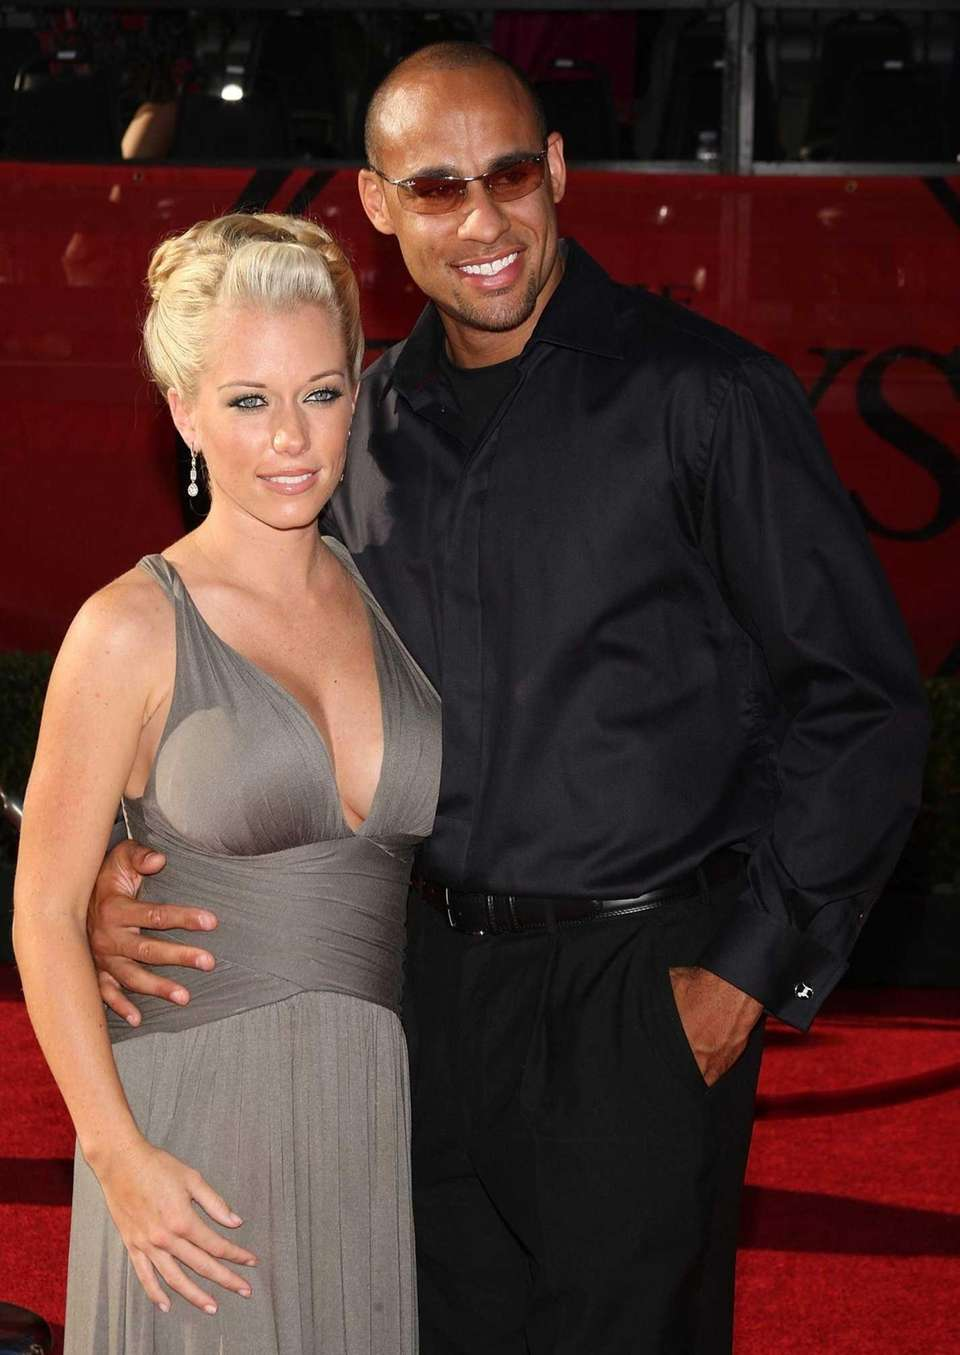 Kendra Wilkinson and Hank Baskett Kendra Wilkinson moved